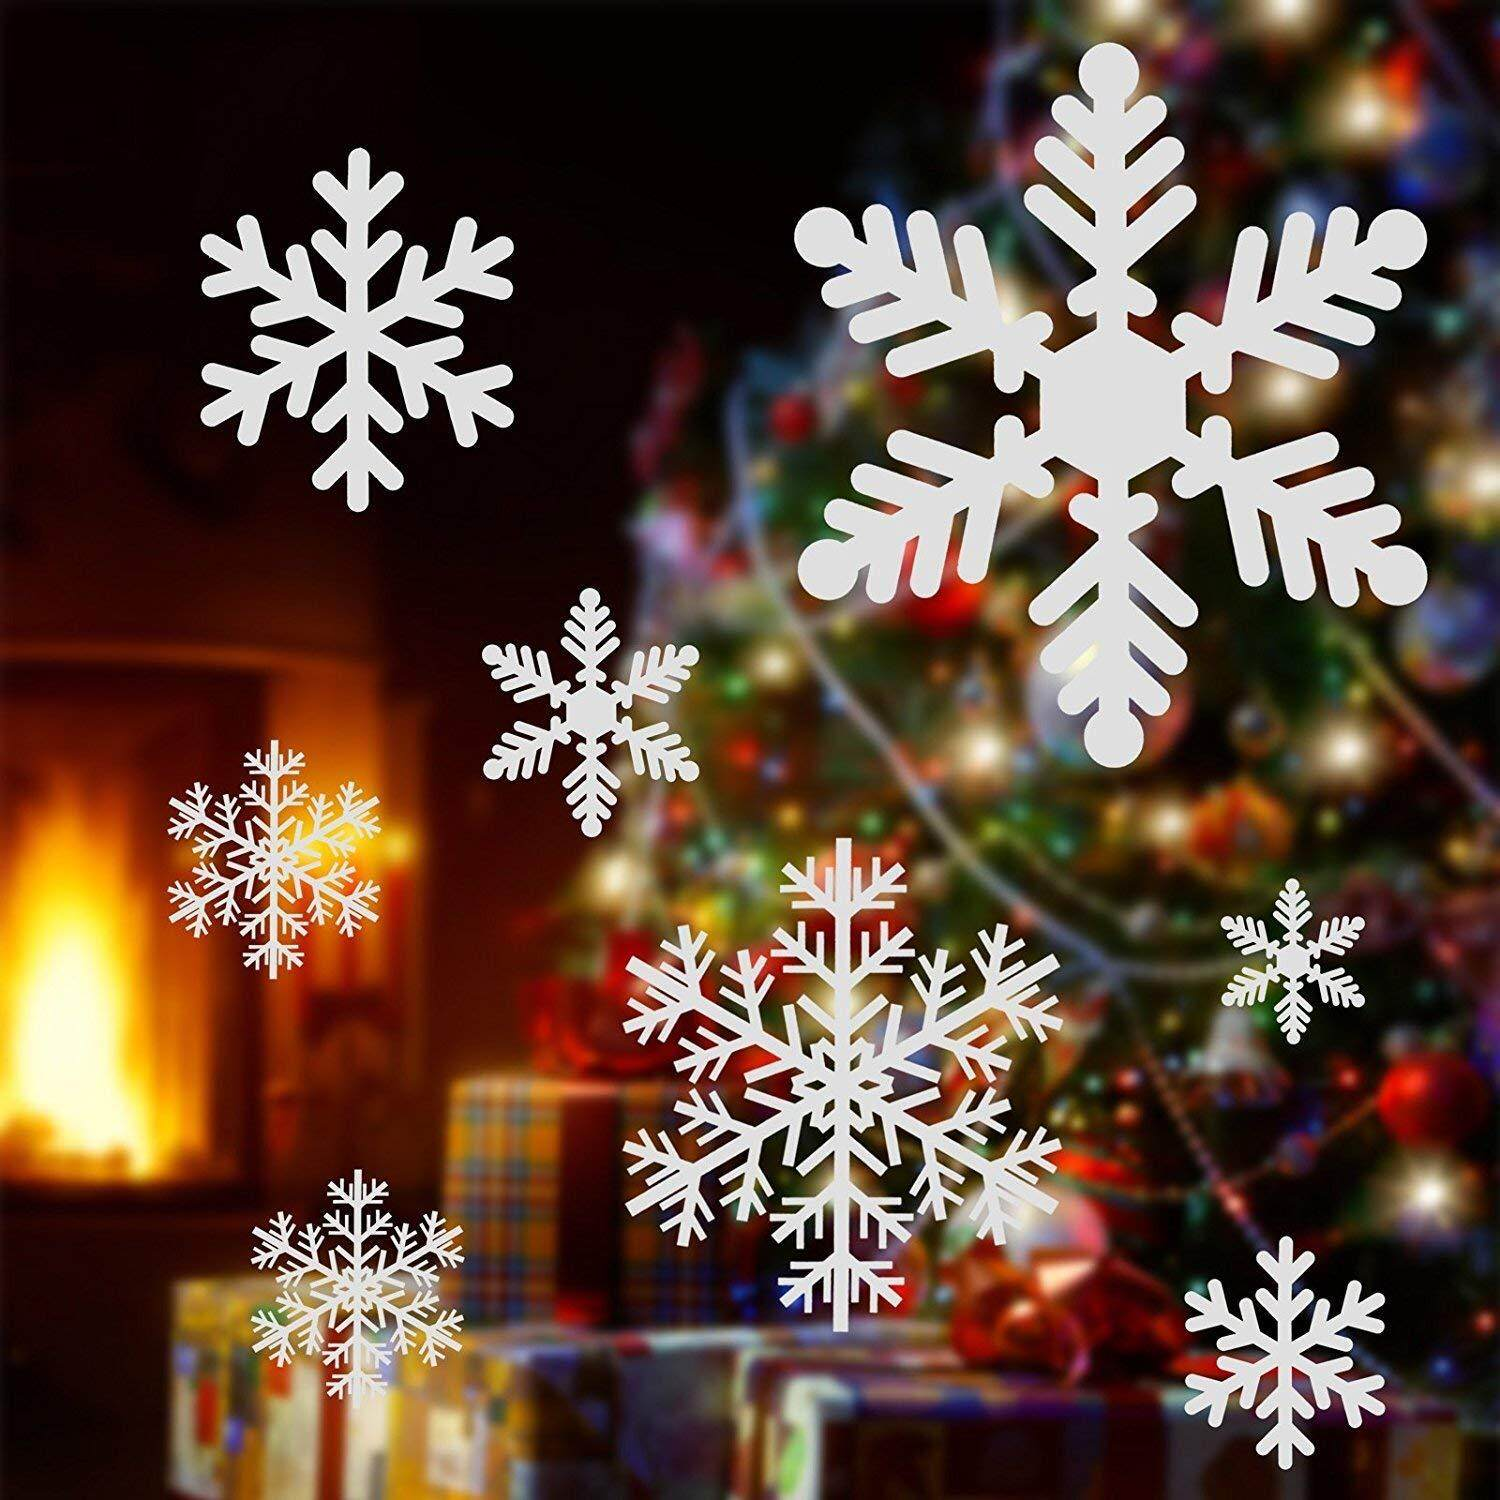 Snowflake Window Clings Decals Christmas Glass Static Stickers - for Holiday Winter Decoration Supplies